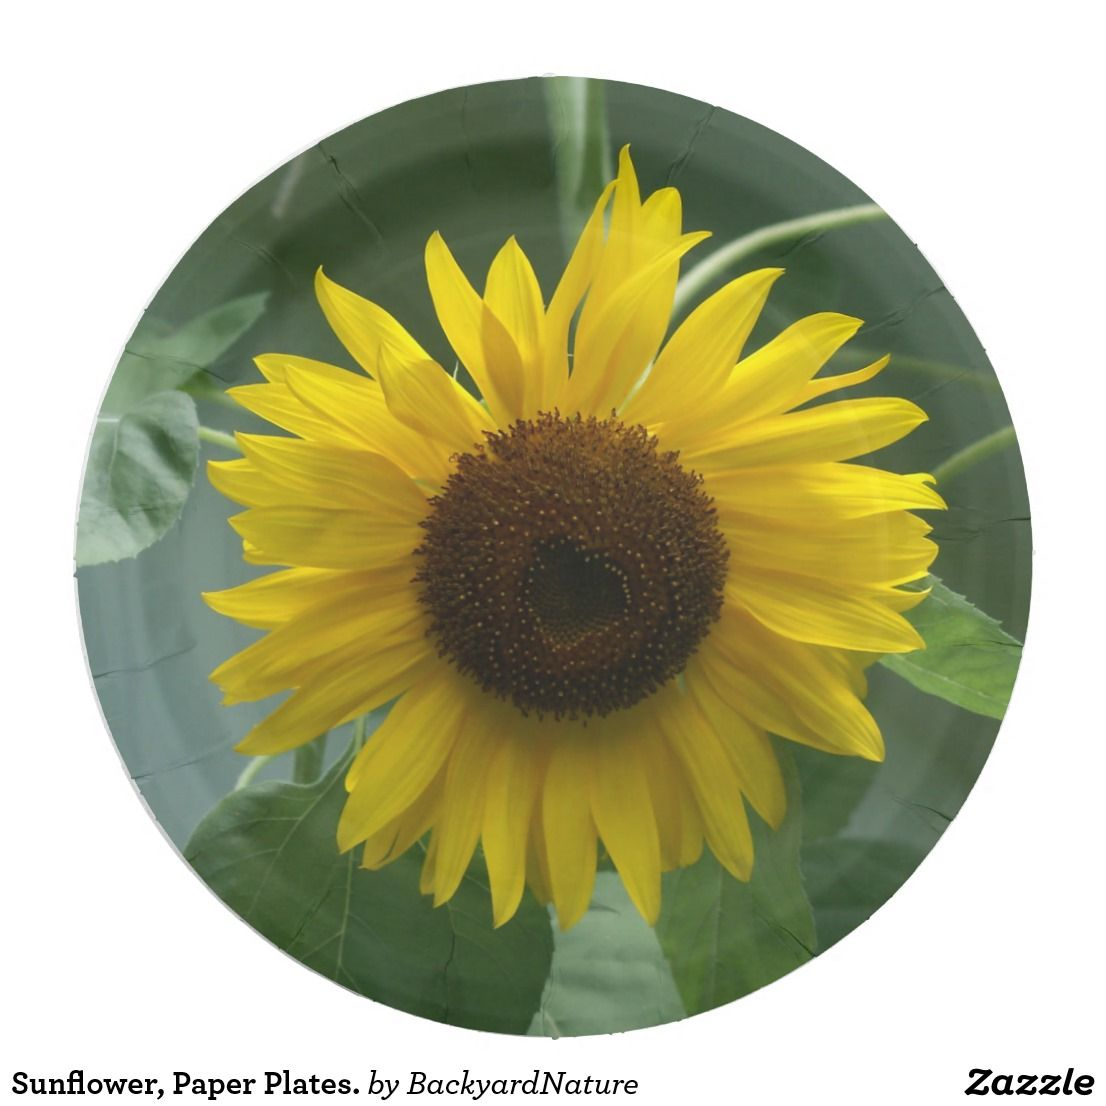 Sunflower, Paper Plates. Paper Plate